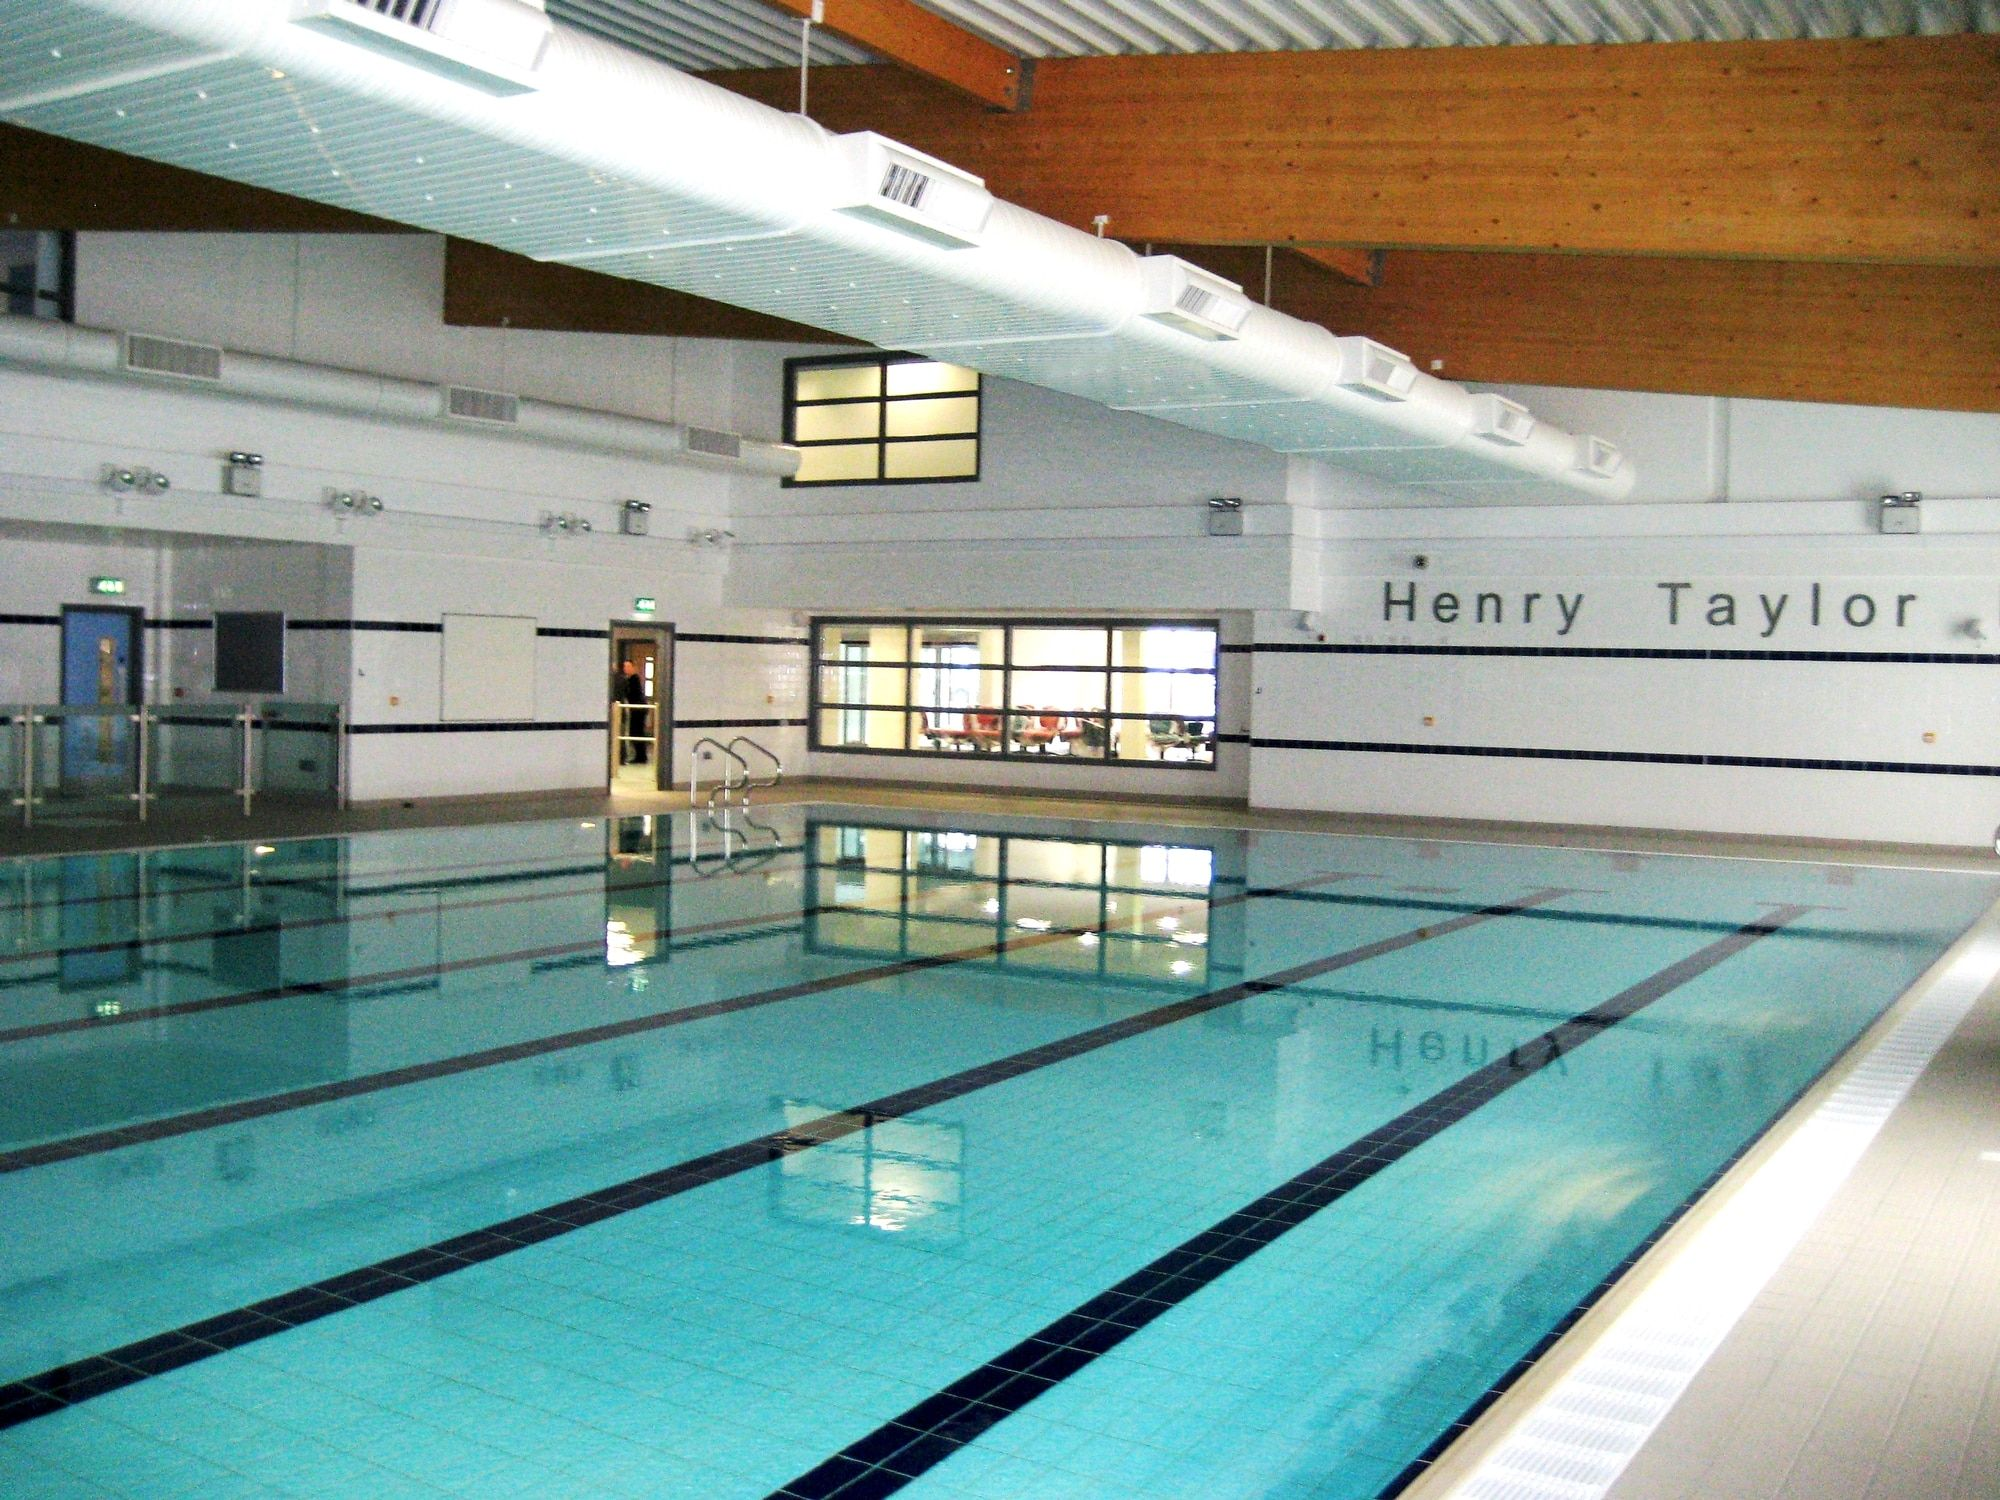 Chadderon goes green with energy efficient Munters pool system